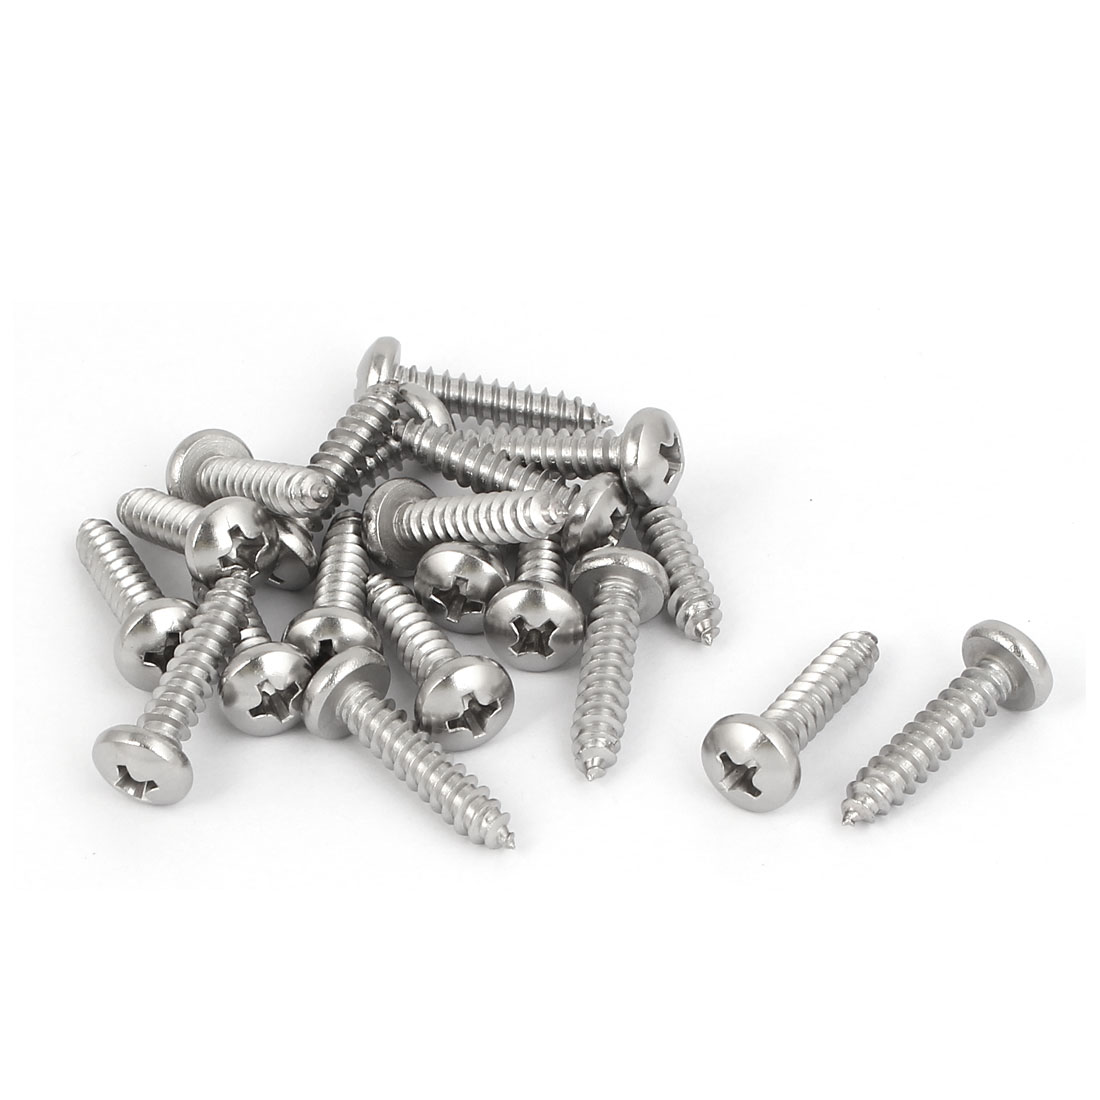 M4.8x22mm 316 Stainless Steel Phillips Drive Pan Head Self Tapping Screws 20pcs